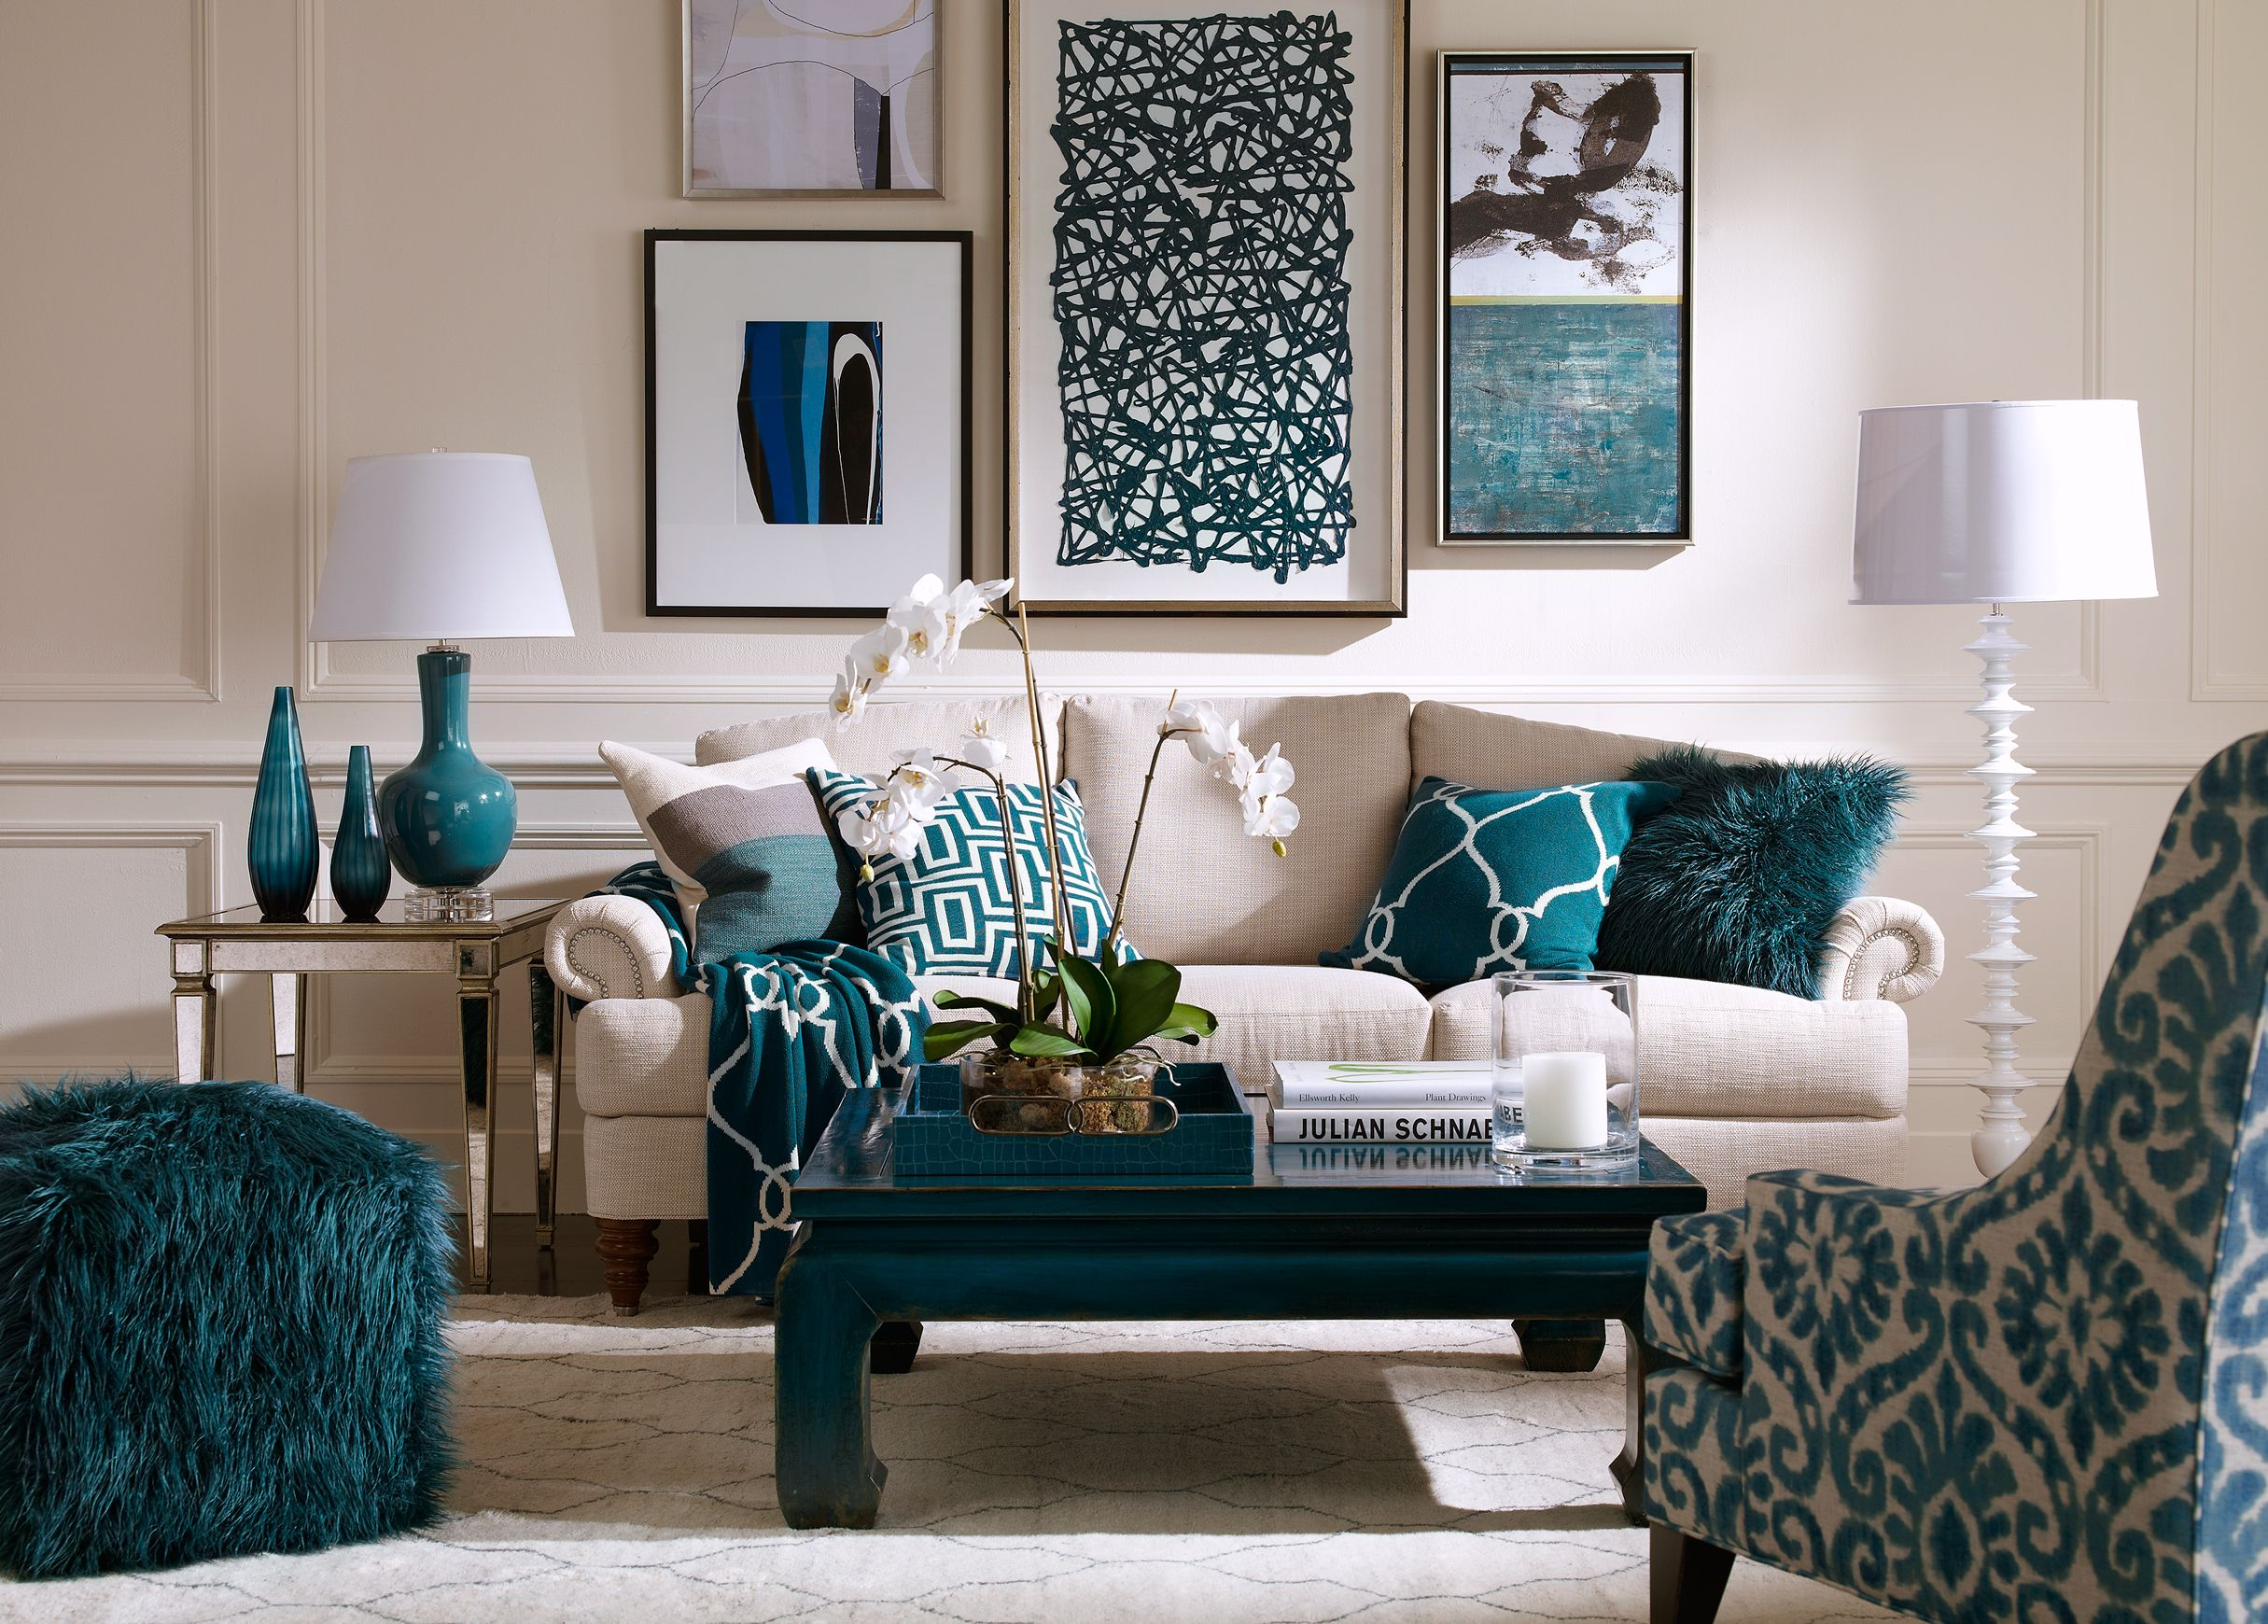 Ordinaire Turquoise Dining Room Ideas, Turquoise Rooms, Turquoise Living Room  Accessories, Using Turquoise In